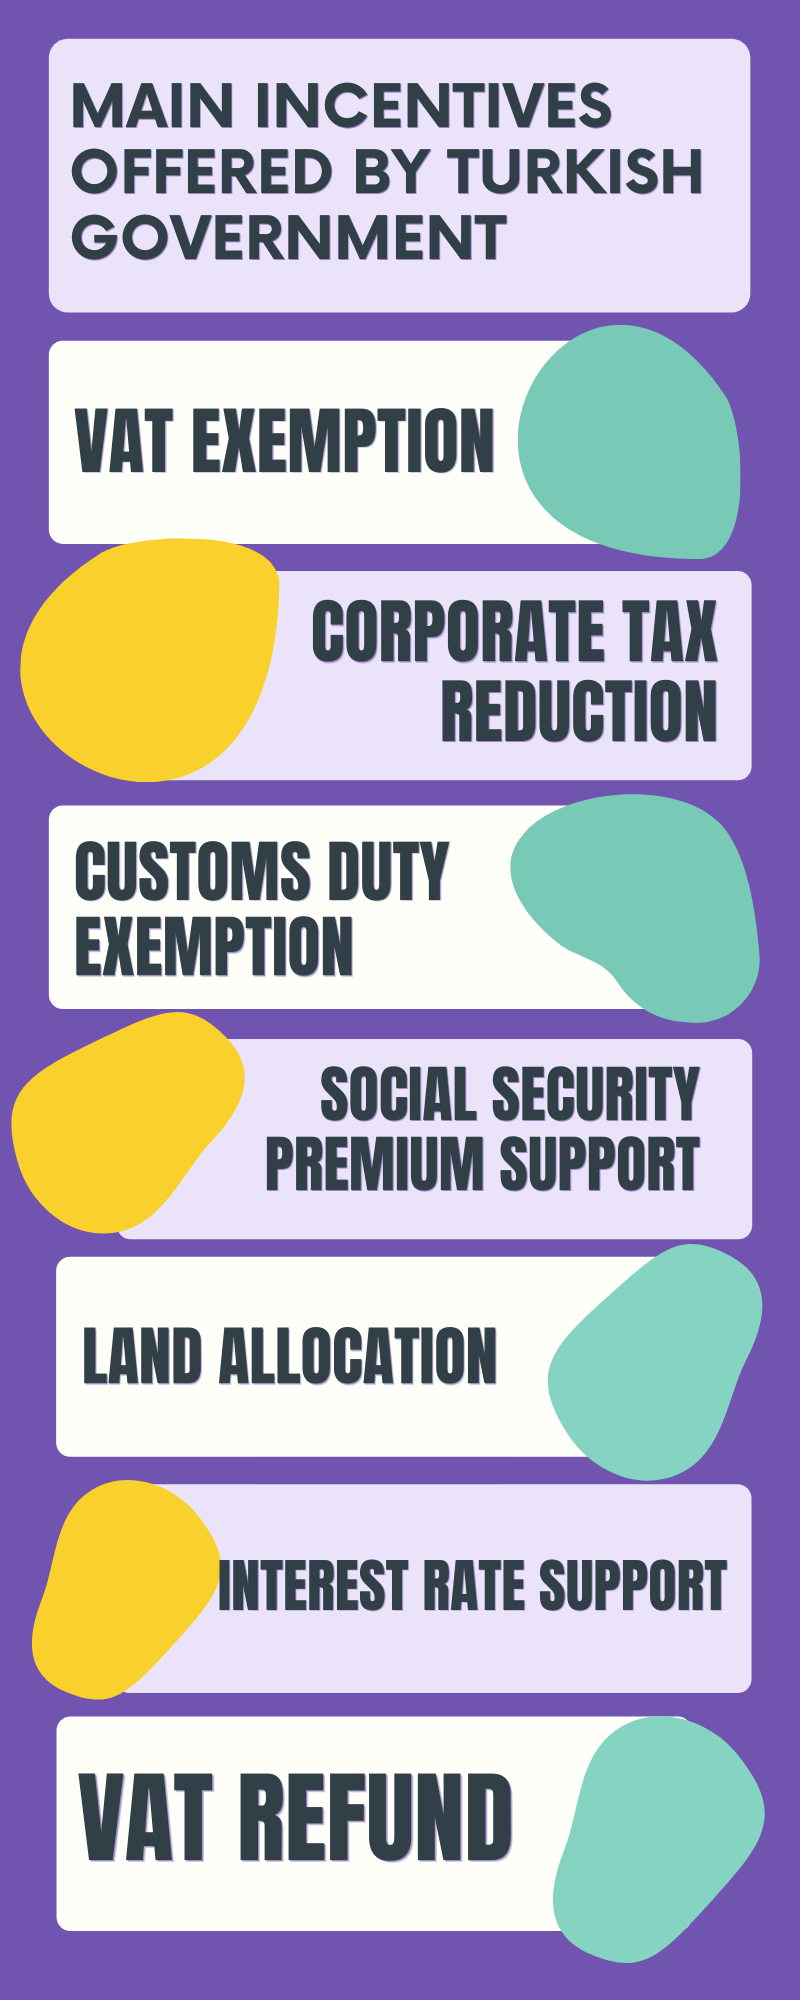 Main incentives of Turkish Government